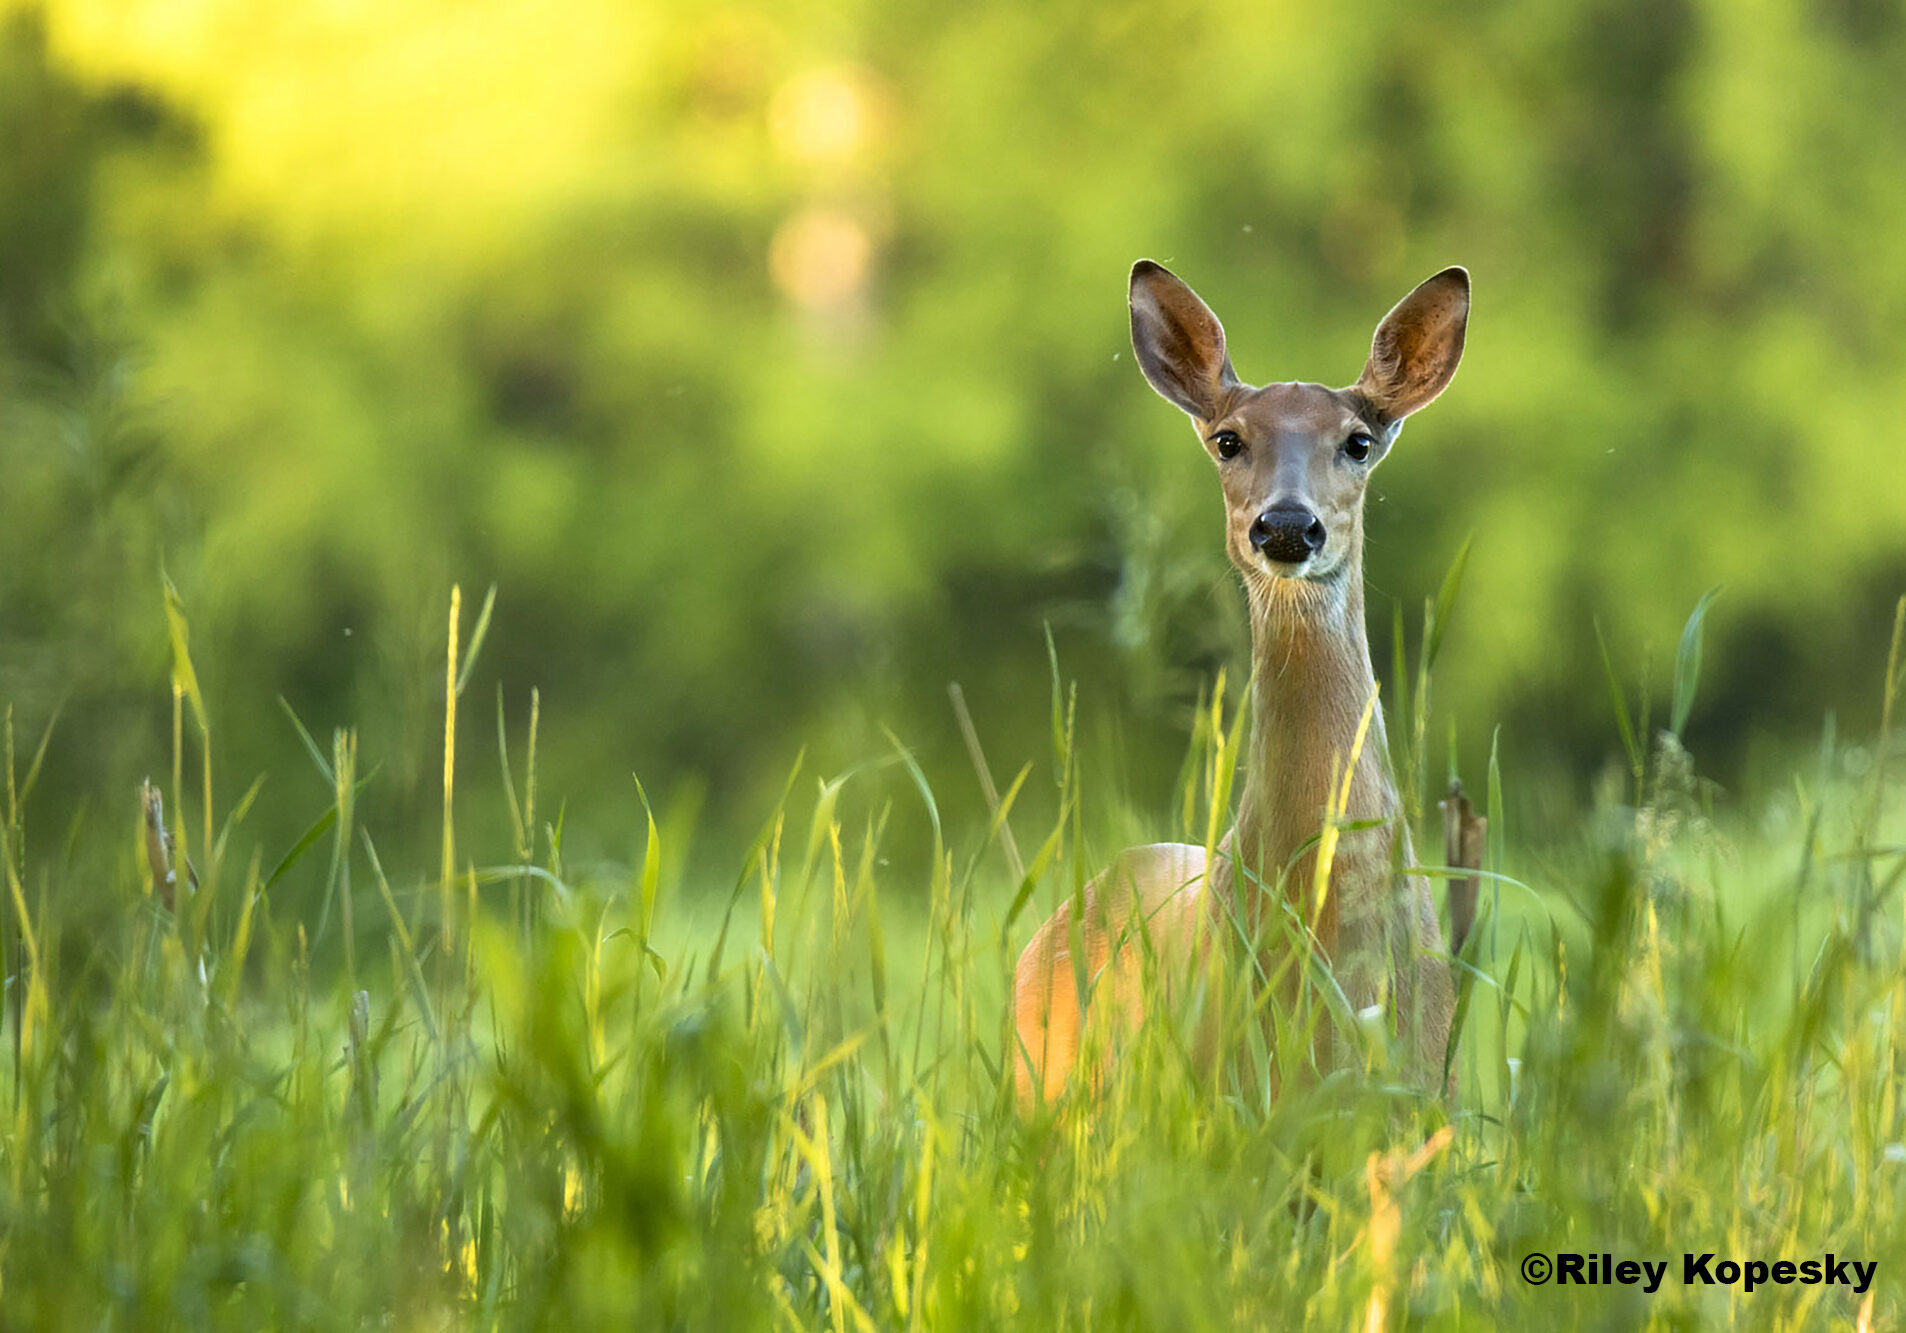 A doe looks at the camera in a field of tall grass